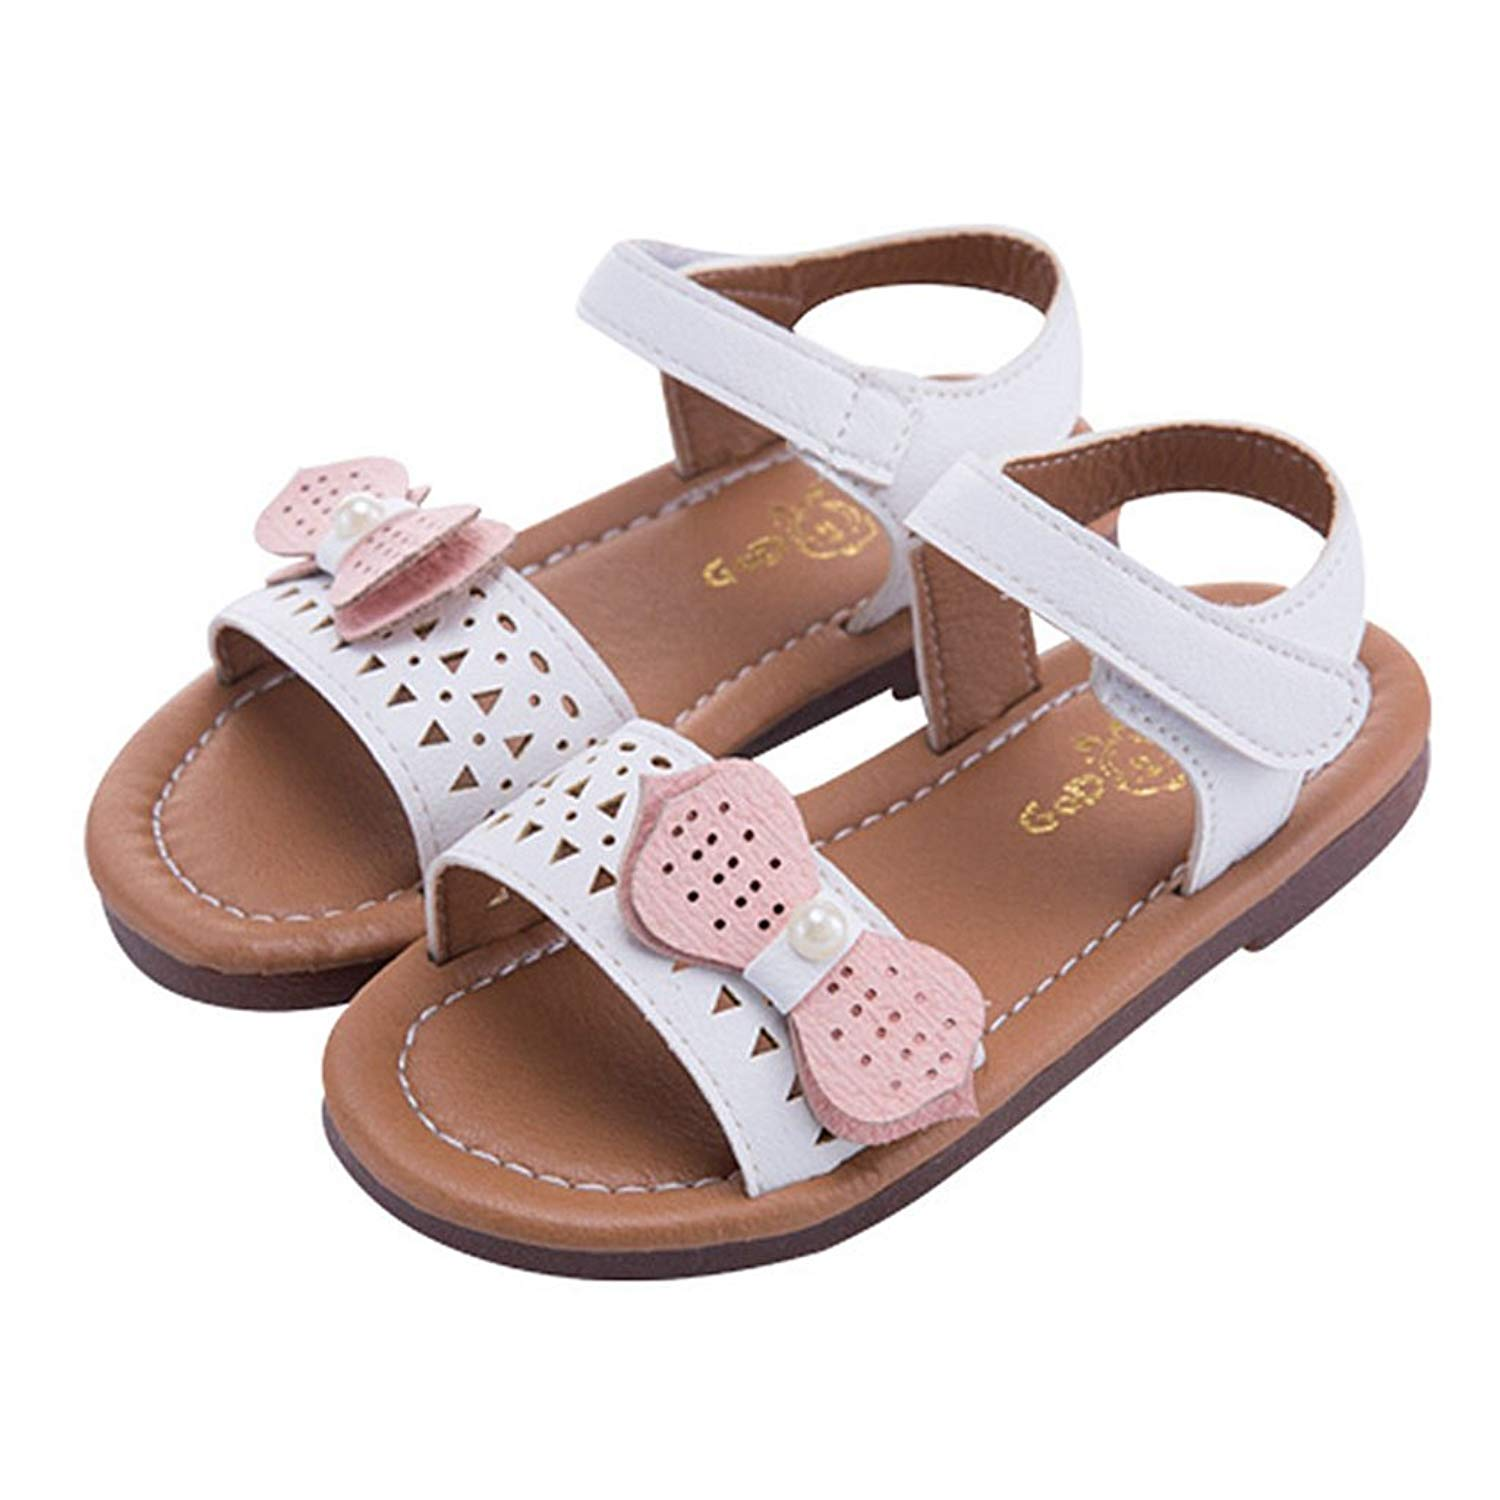 Girl's Bowknot Open Toe Flat Sandals Summer Outdoor Beach Non-Slip Athletic Sandals Hot Water Shoes